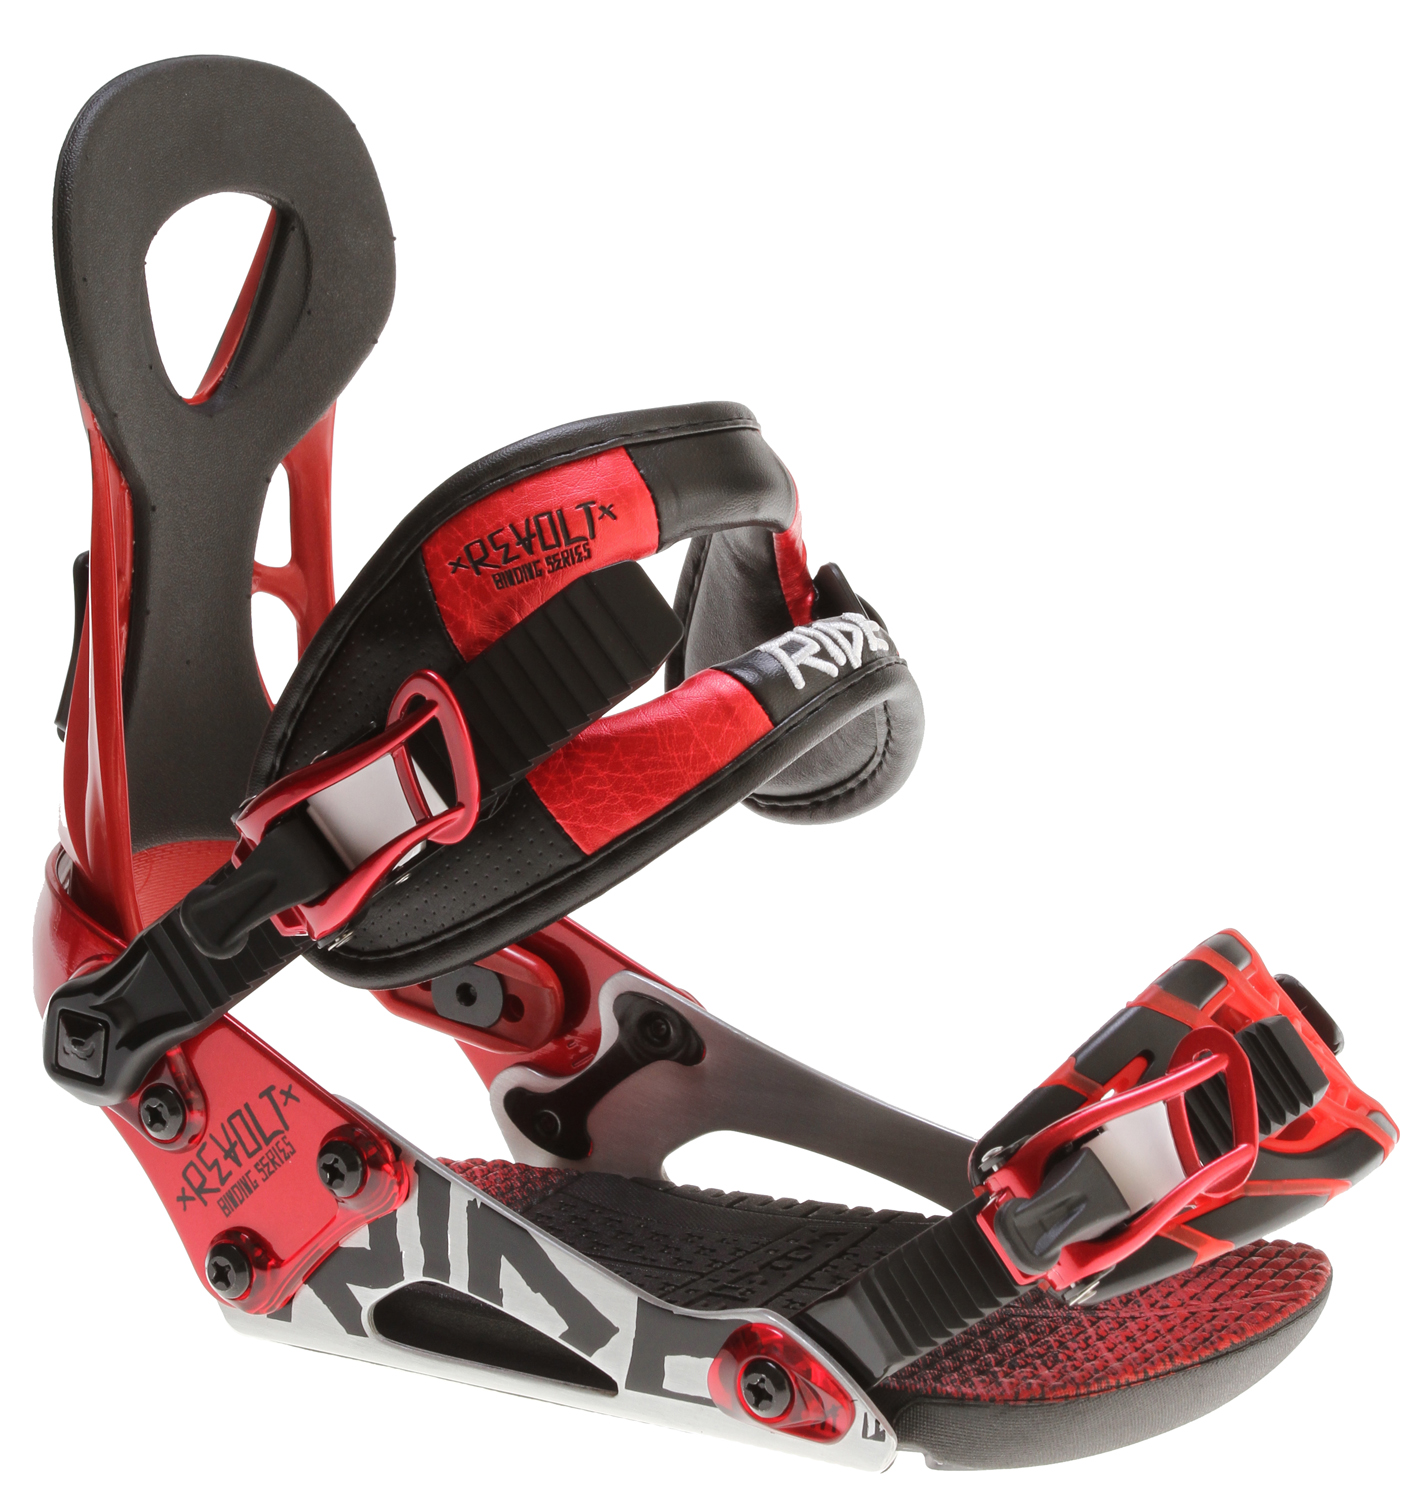 Snowboard An All-Around Freestyle Upheaval Breaking the mold for freestyle versatility, the Ride Revolt Snowboard Binding features Wedgie 2.5 for an added boost of ollie pop and ThinGrip toe strap for snug boot grip and response. Throw in the Balance Core ankle strap and FreeFlex highback for a binder that is packed with performance enhancing features and ideal for getting the most out of your day.Key Features of the Ride Revolt Snowboard Bindings: Foundation Chassis System w/ Adjustable Heelcup FreeFlex Highback Balance Core Ankle Strap ThinGrip Toe Strap Wedgie 2.5 Footbed EVA Basepad UltraLite Ratchets Forged Aluminum Response Disc - $129.95